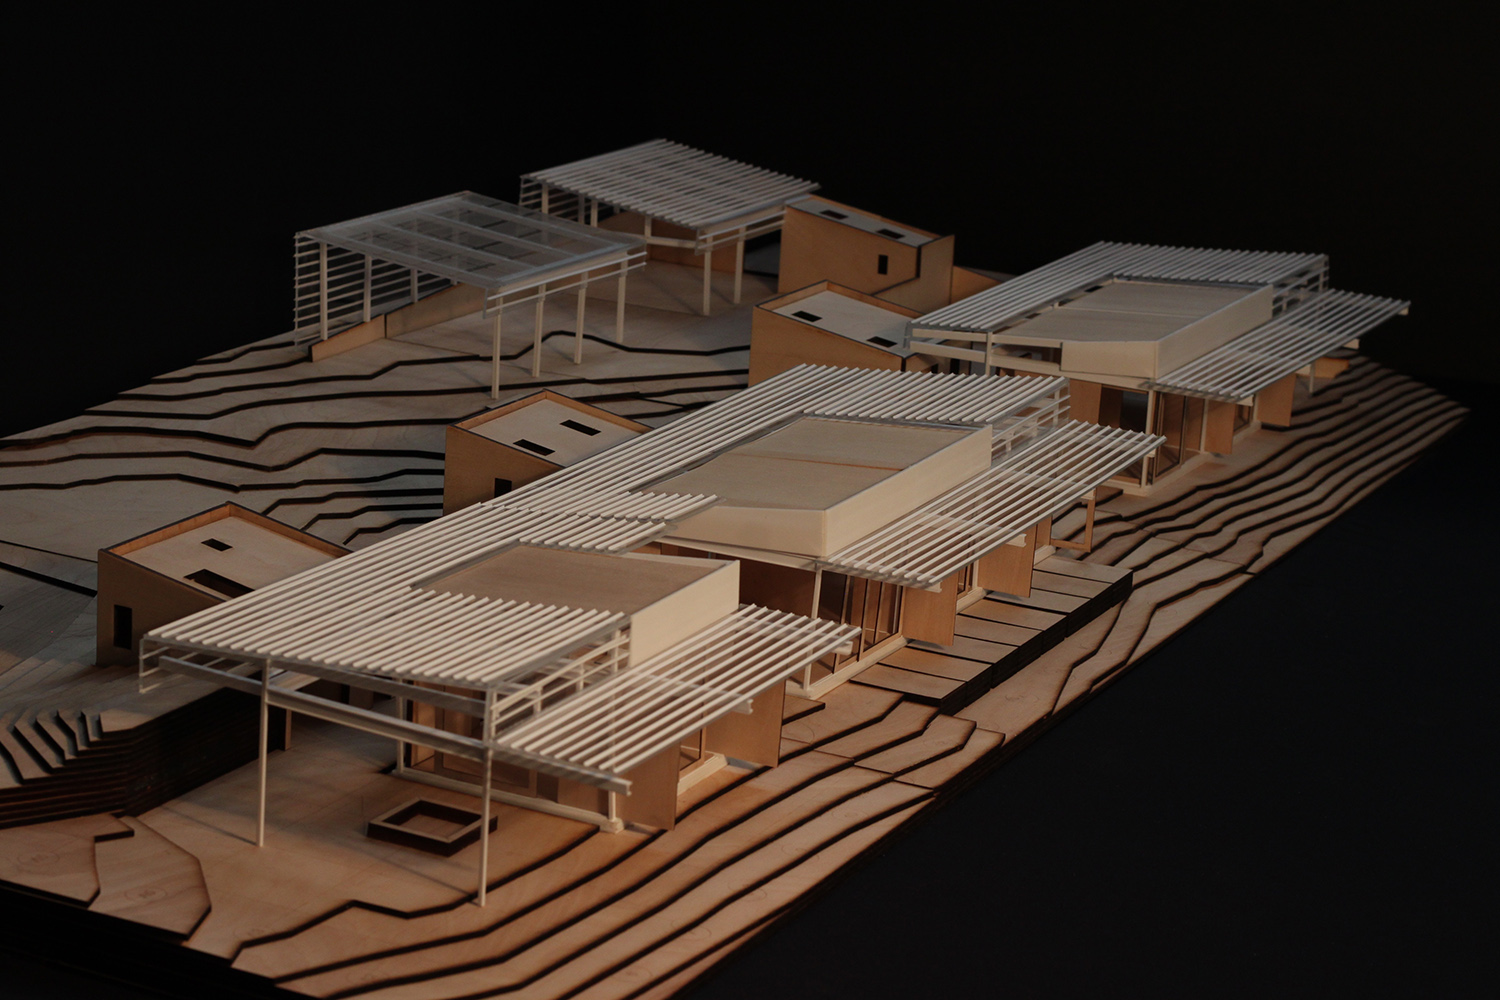 Design process model in wood and cardboard, view from southwest. Anderson Anderson Architecture}